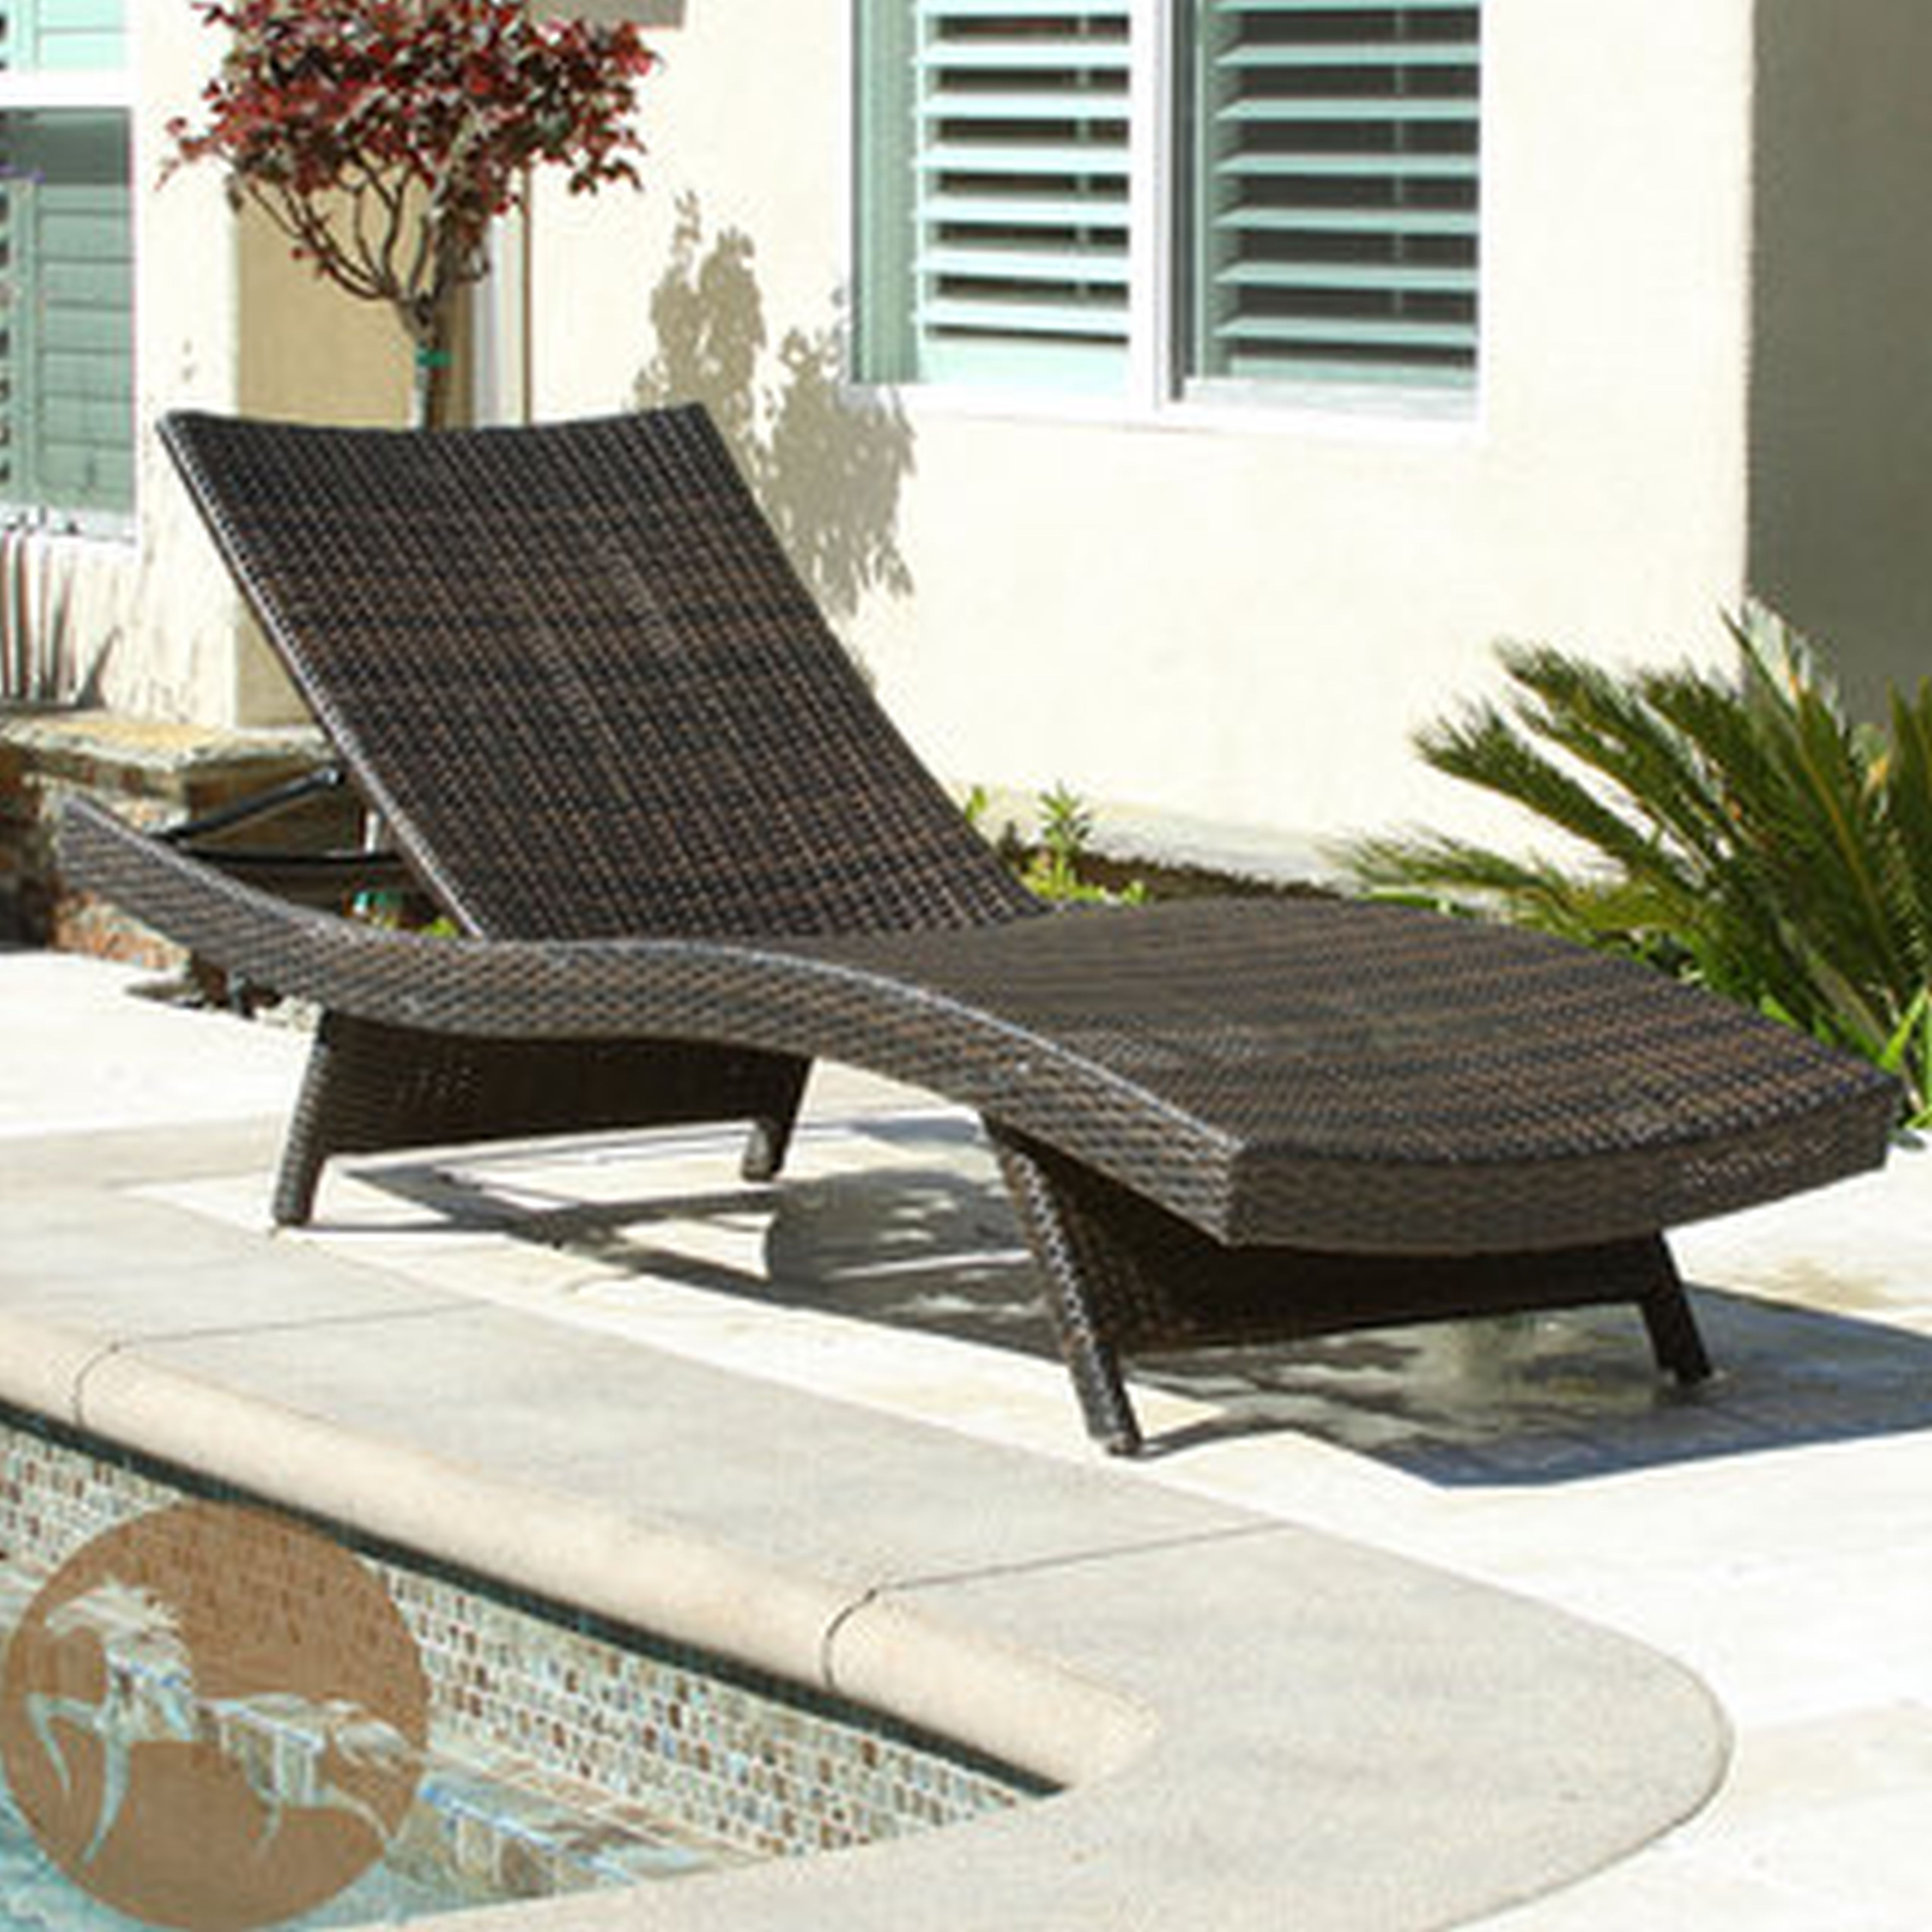 Preferred Modern Outdoor Chaise Lounge Chairs Inside Outdoor : Patio Chaise Lounge Chairs Pool Lounge Chairs Chaise (View 13 of 15)